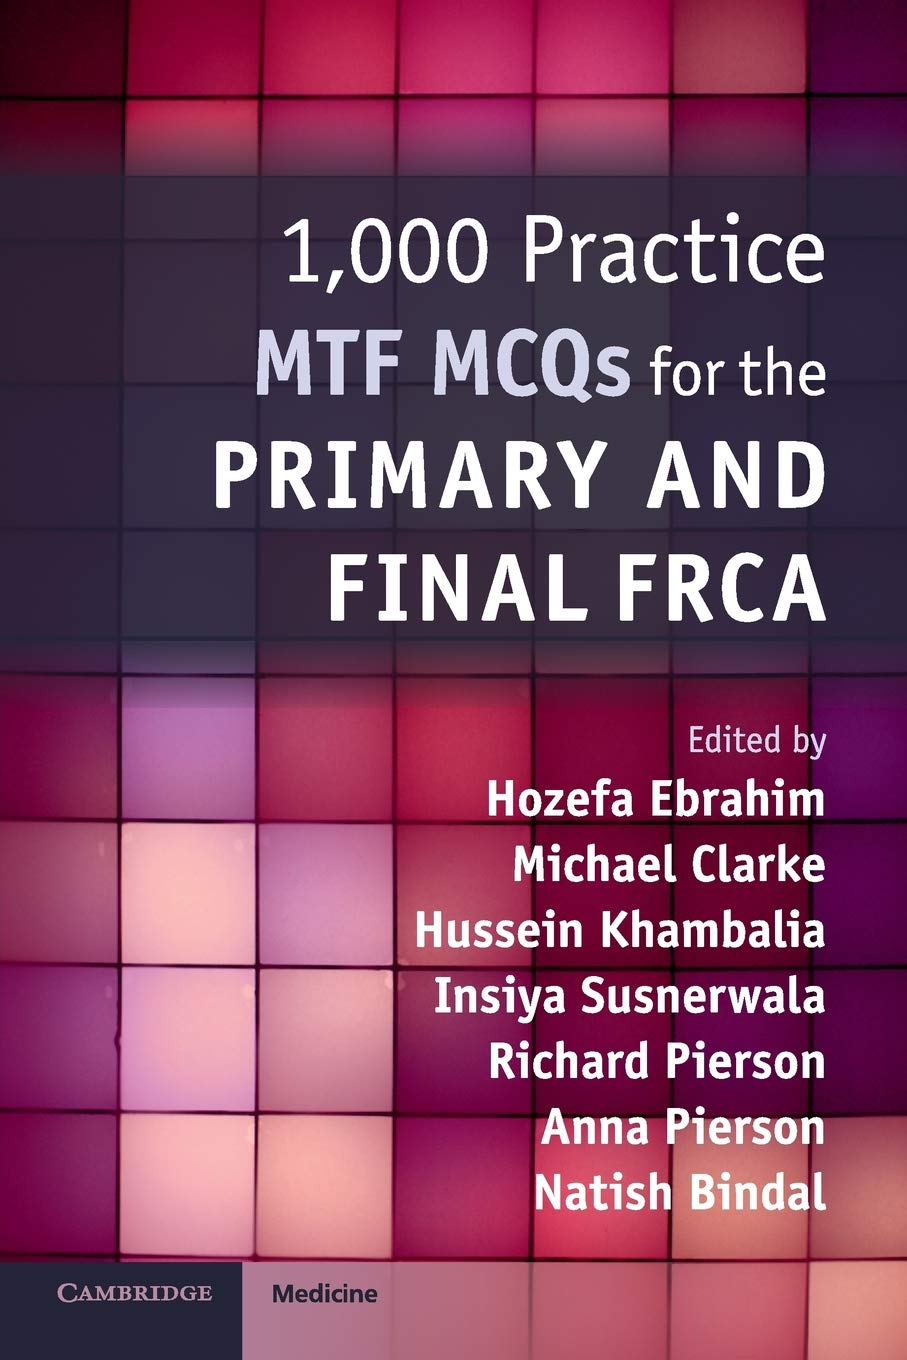 1000 Practice MTF MCQs For The Primary And Final FRCA